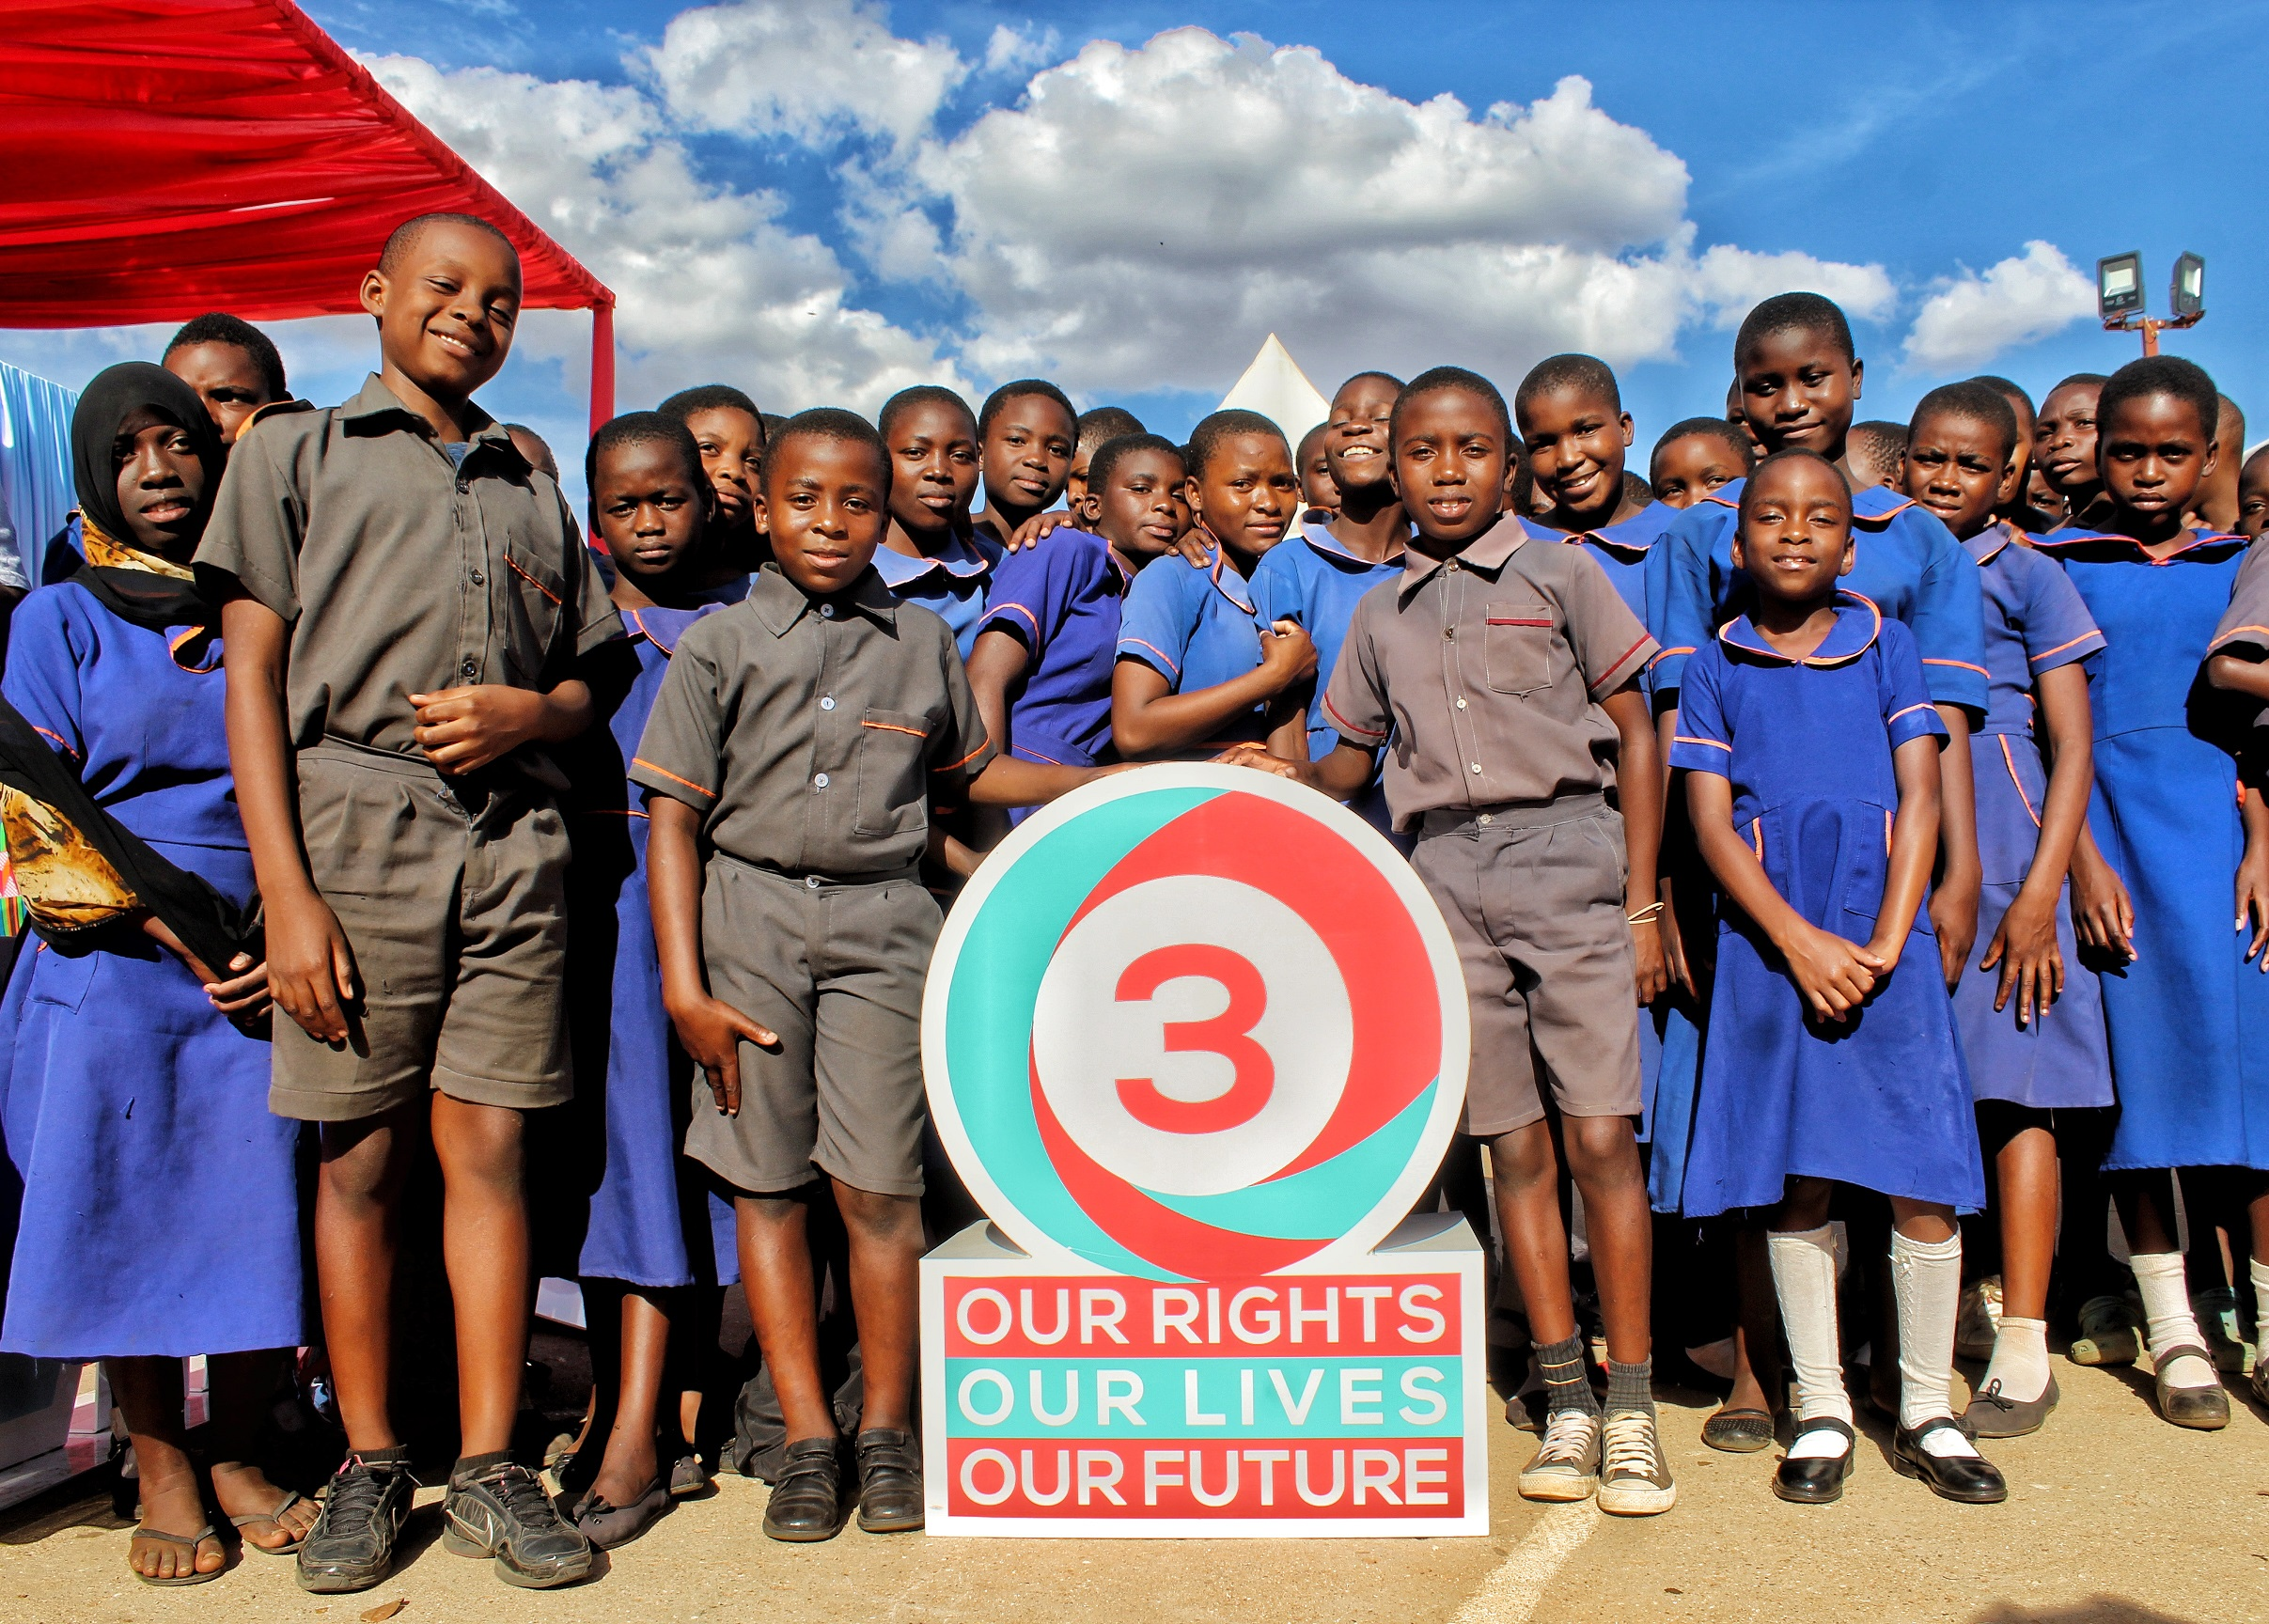 Our Rights, Our Lives, Our Future (O3) programme aims to support students like these in Malawi